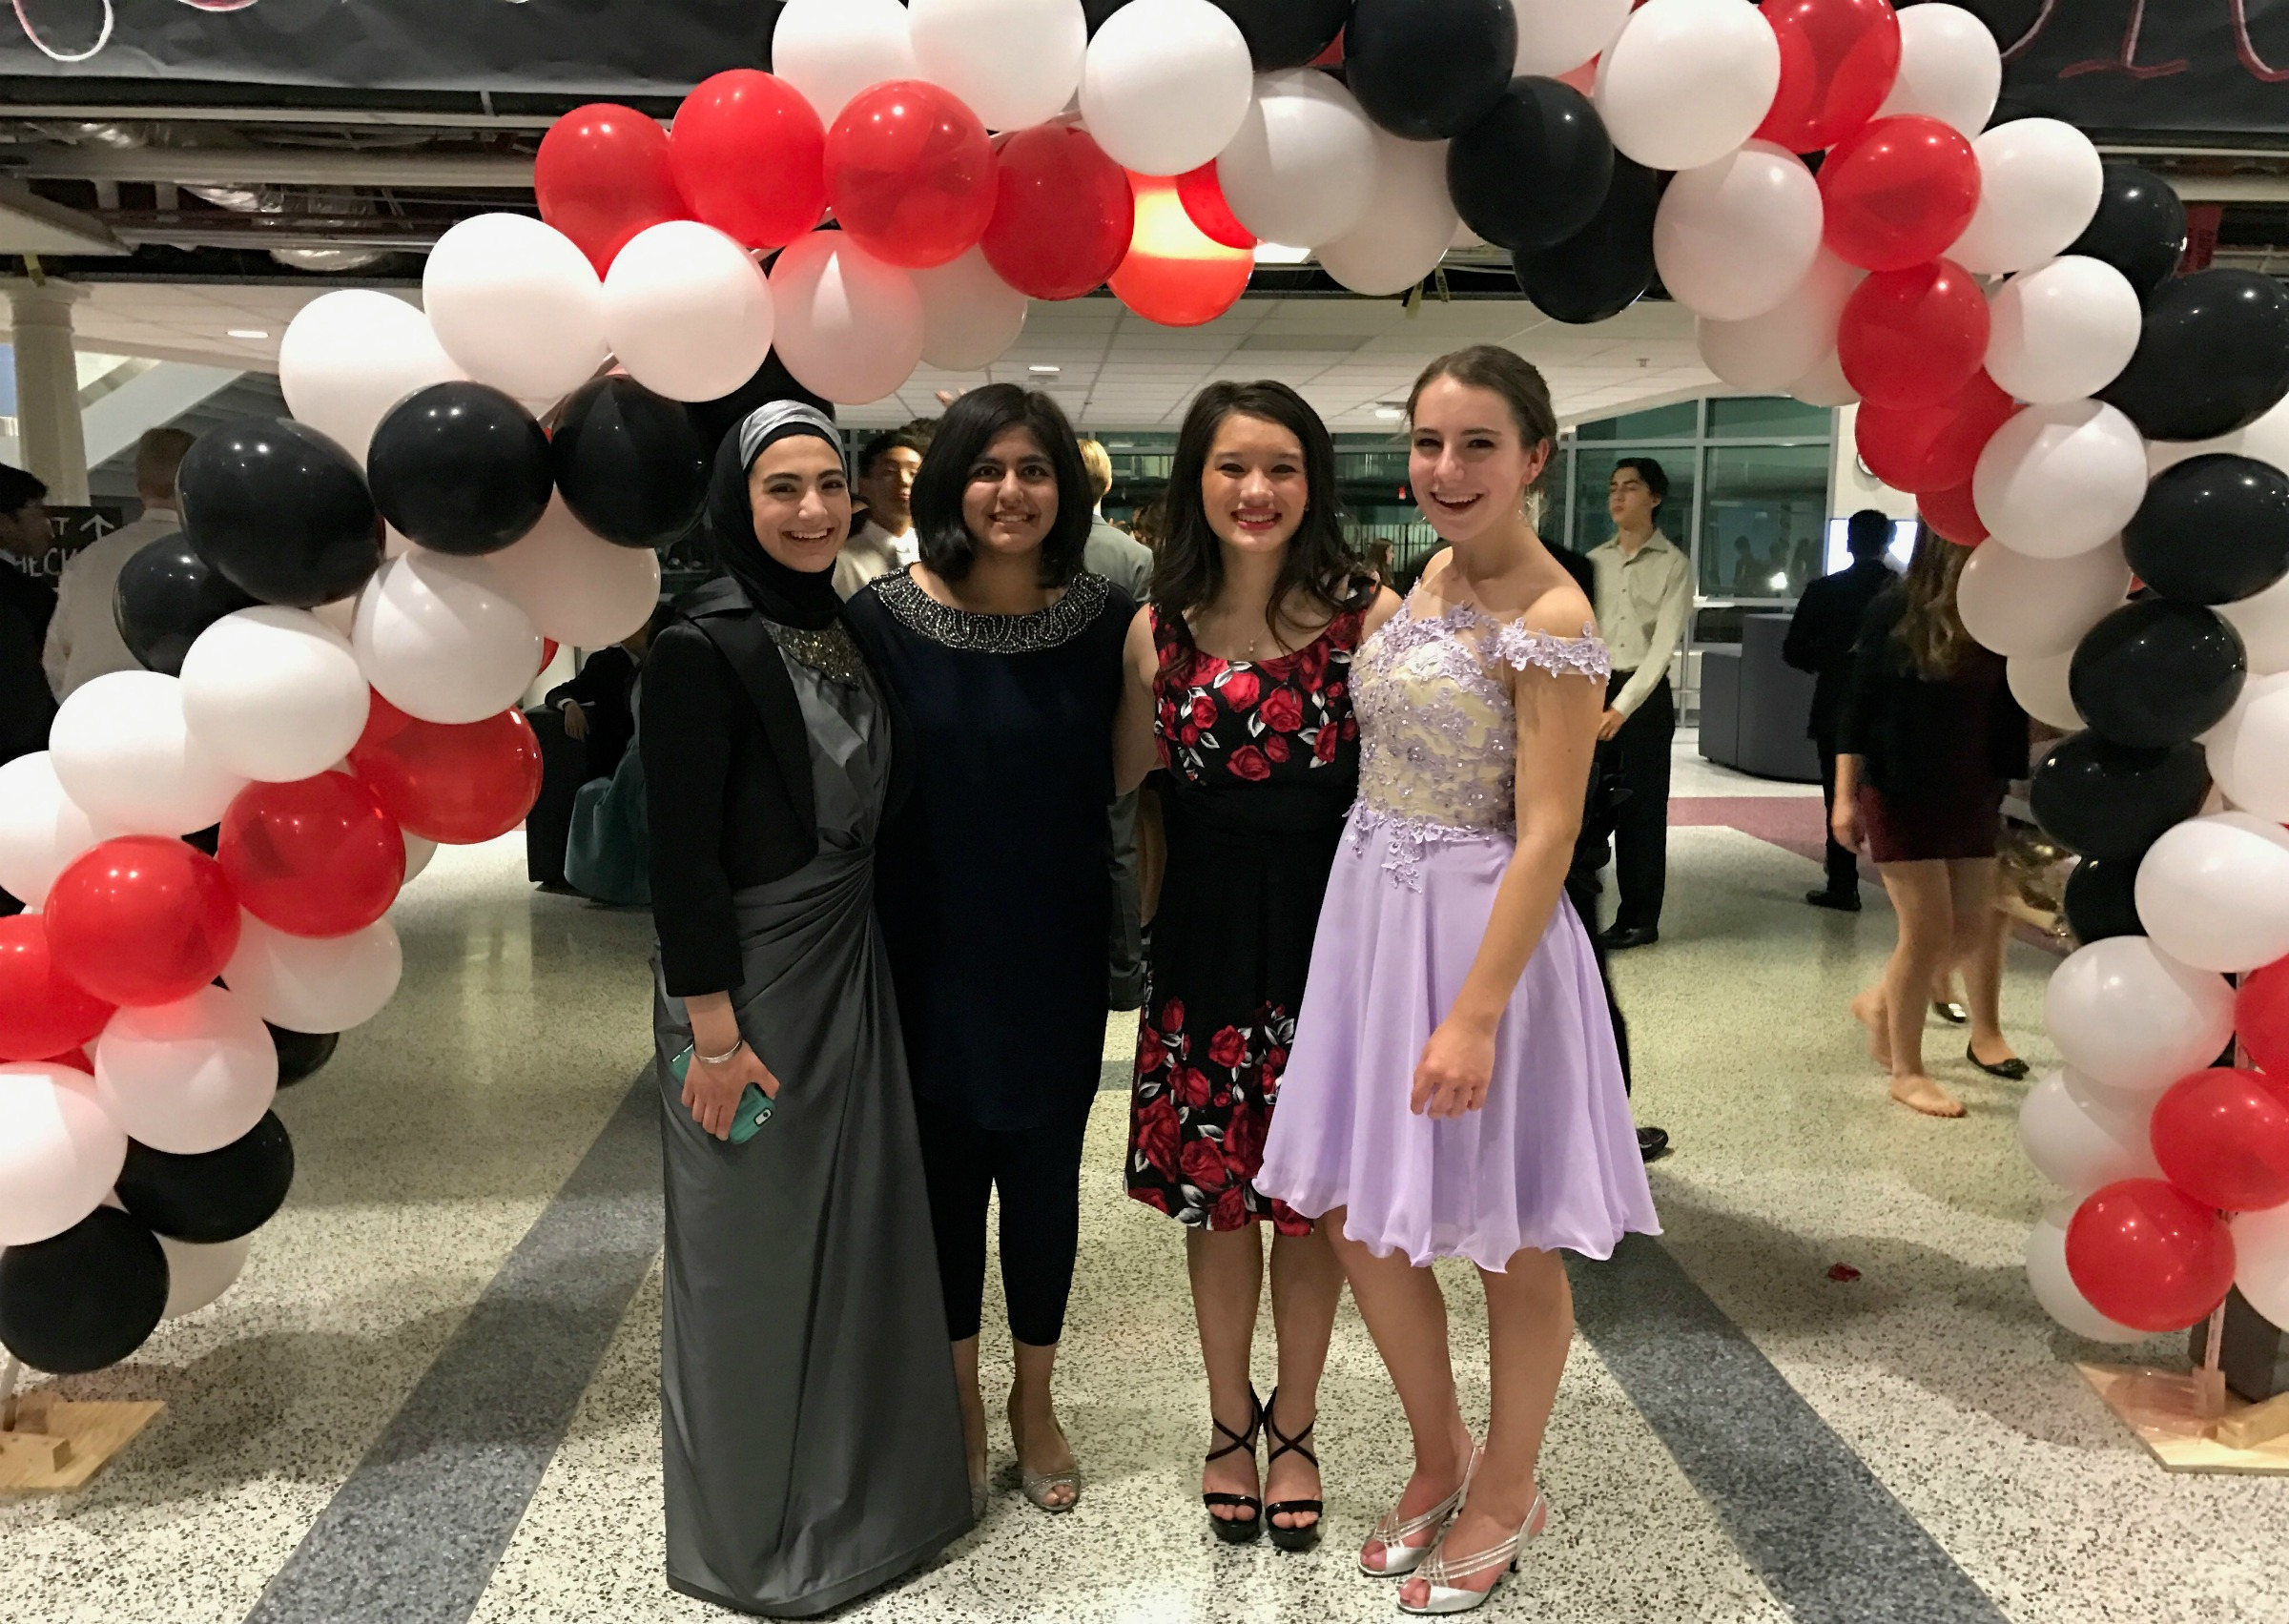 At the dance, students pose in front of the balloon arch for homecoming pictures.